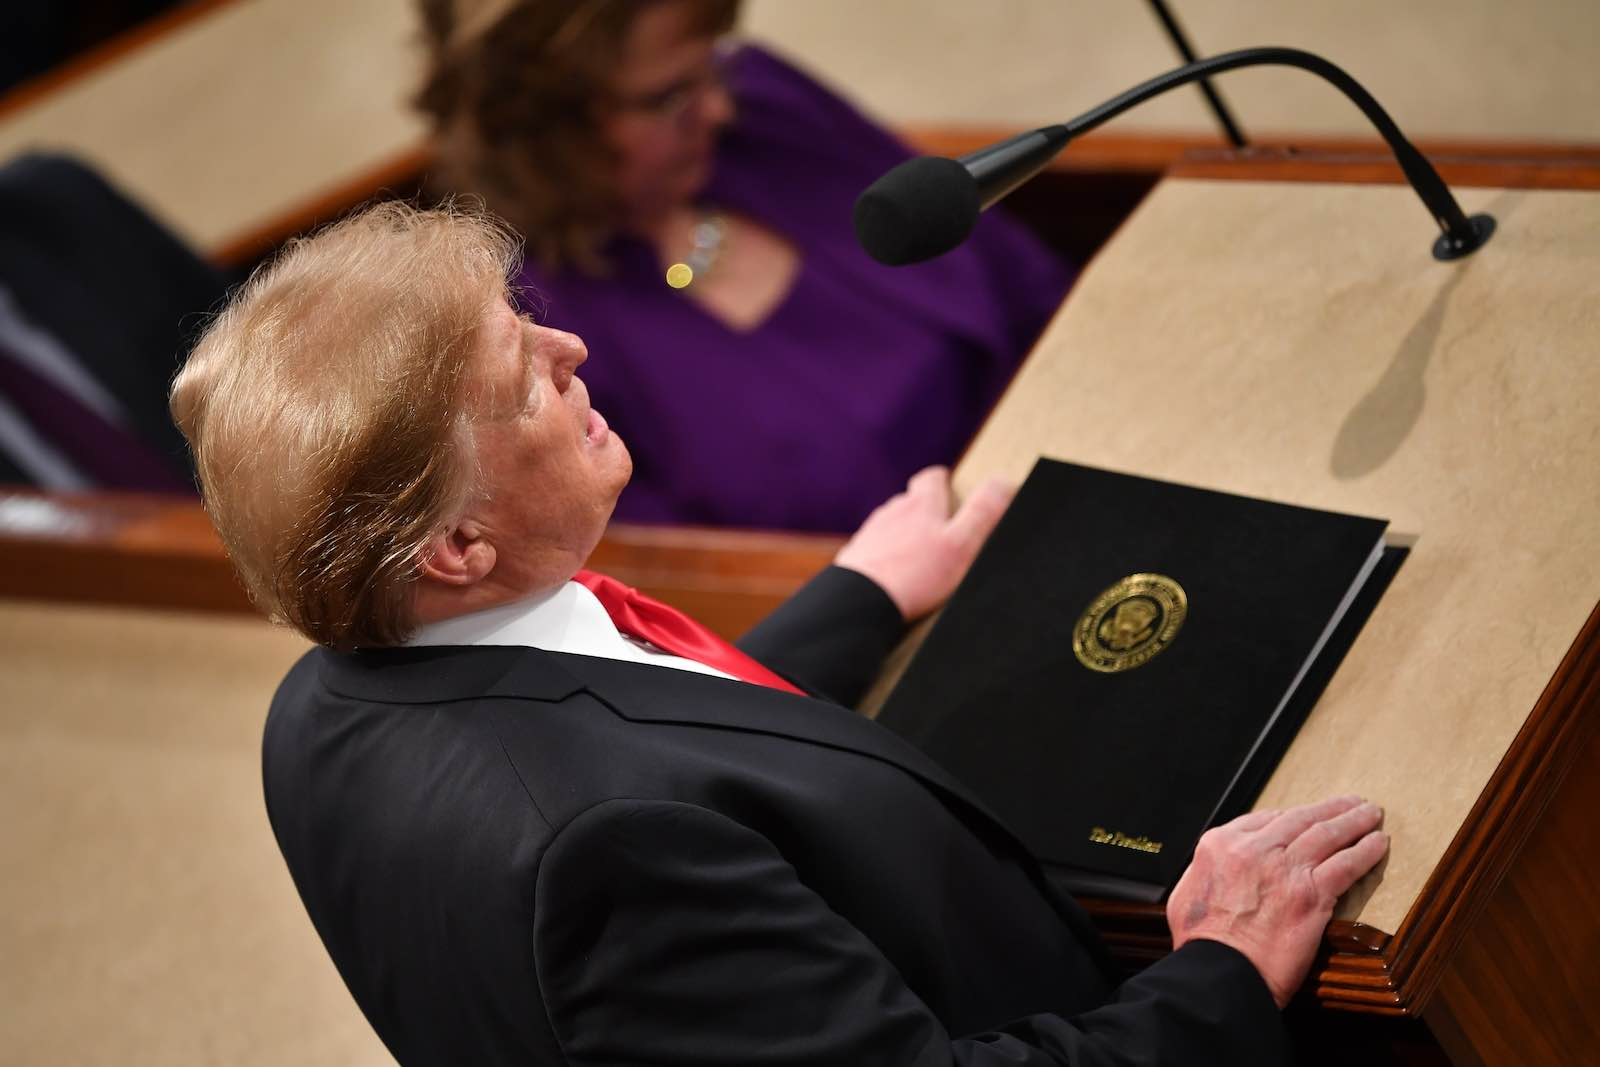 US President Donald Trump delivers the State of the Union address at the US Capitol in Washington DC (Photo by Mandel Ngan/AFP/Getty Images)